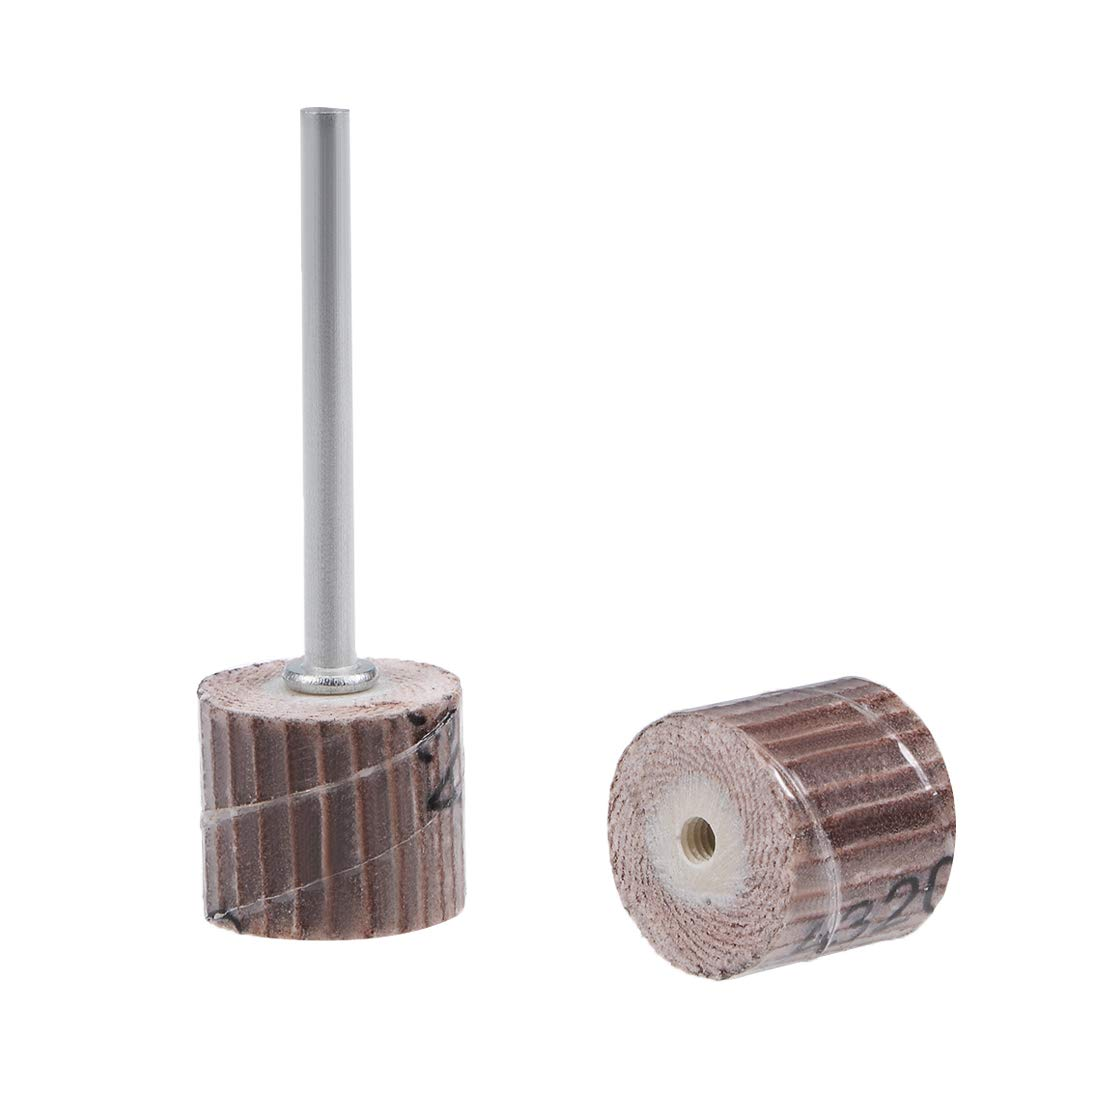 uxcell 2 Pcs 12x12mm Flap Wheel 320 Grits Abrasive Grinding Head with 1/8'' Shank for Rotary Tool